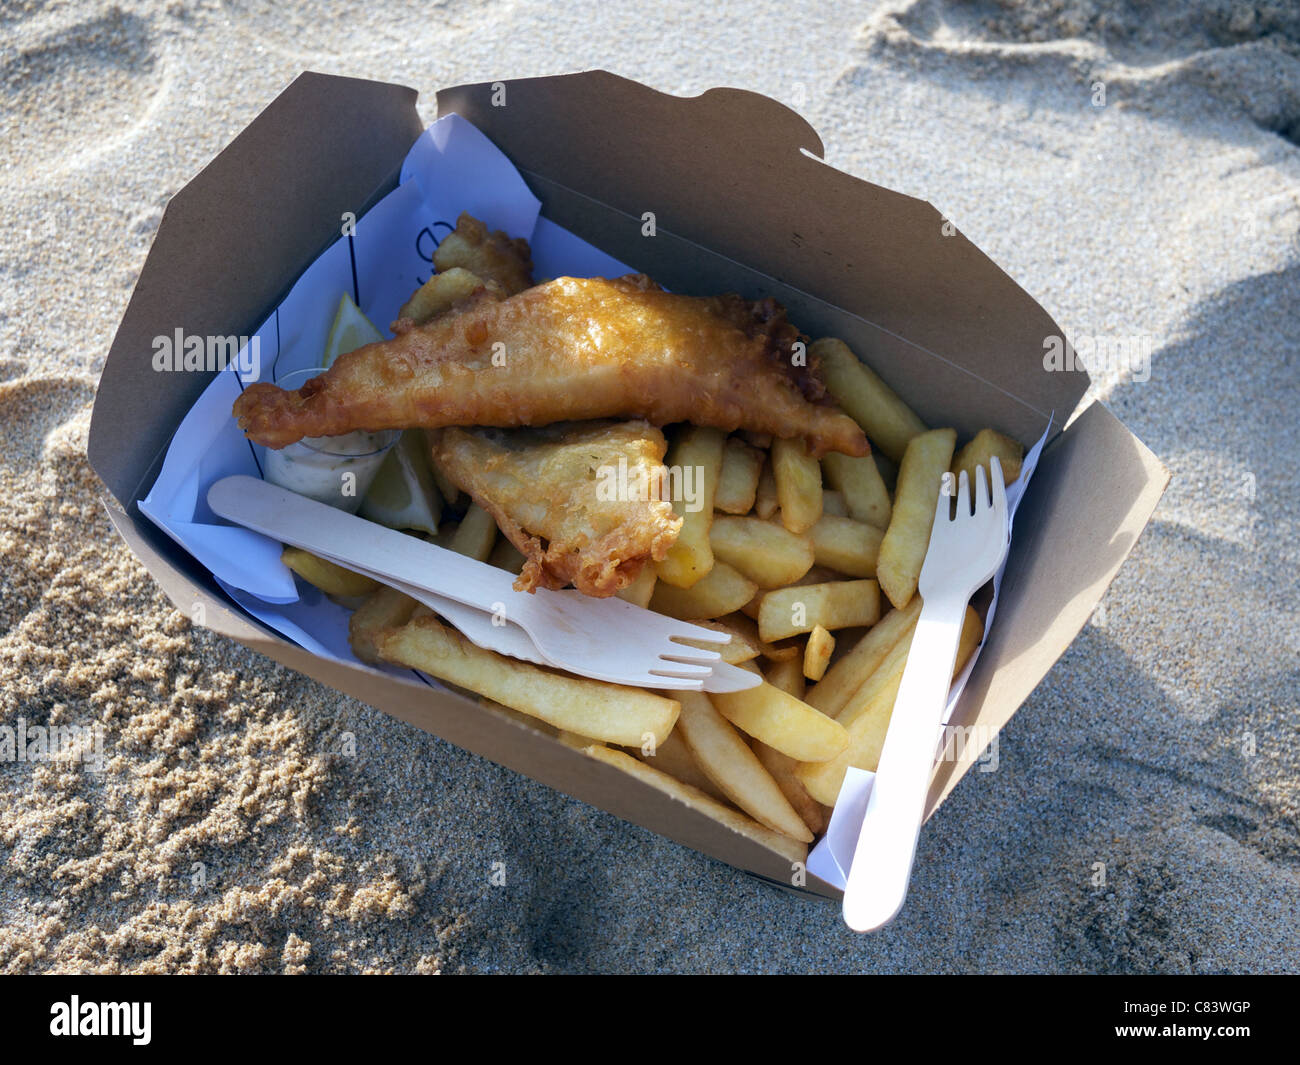 Fish And Chips on the beach. - Stock Image